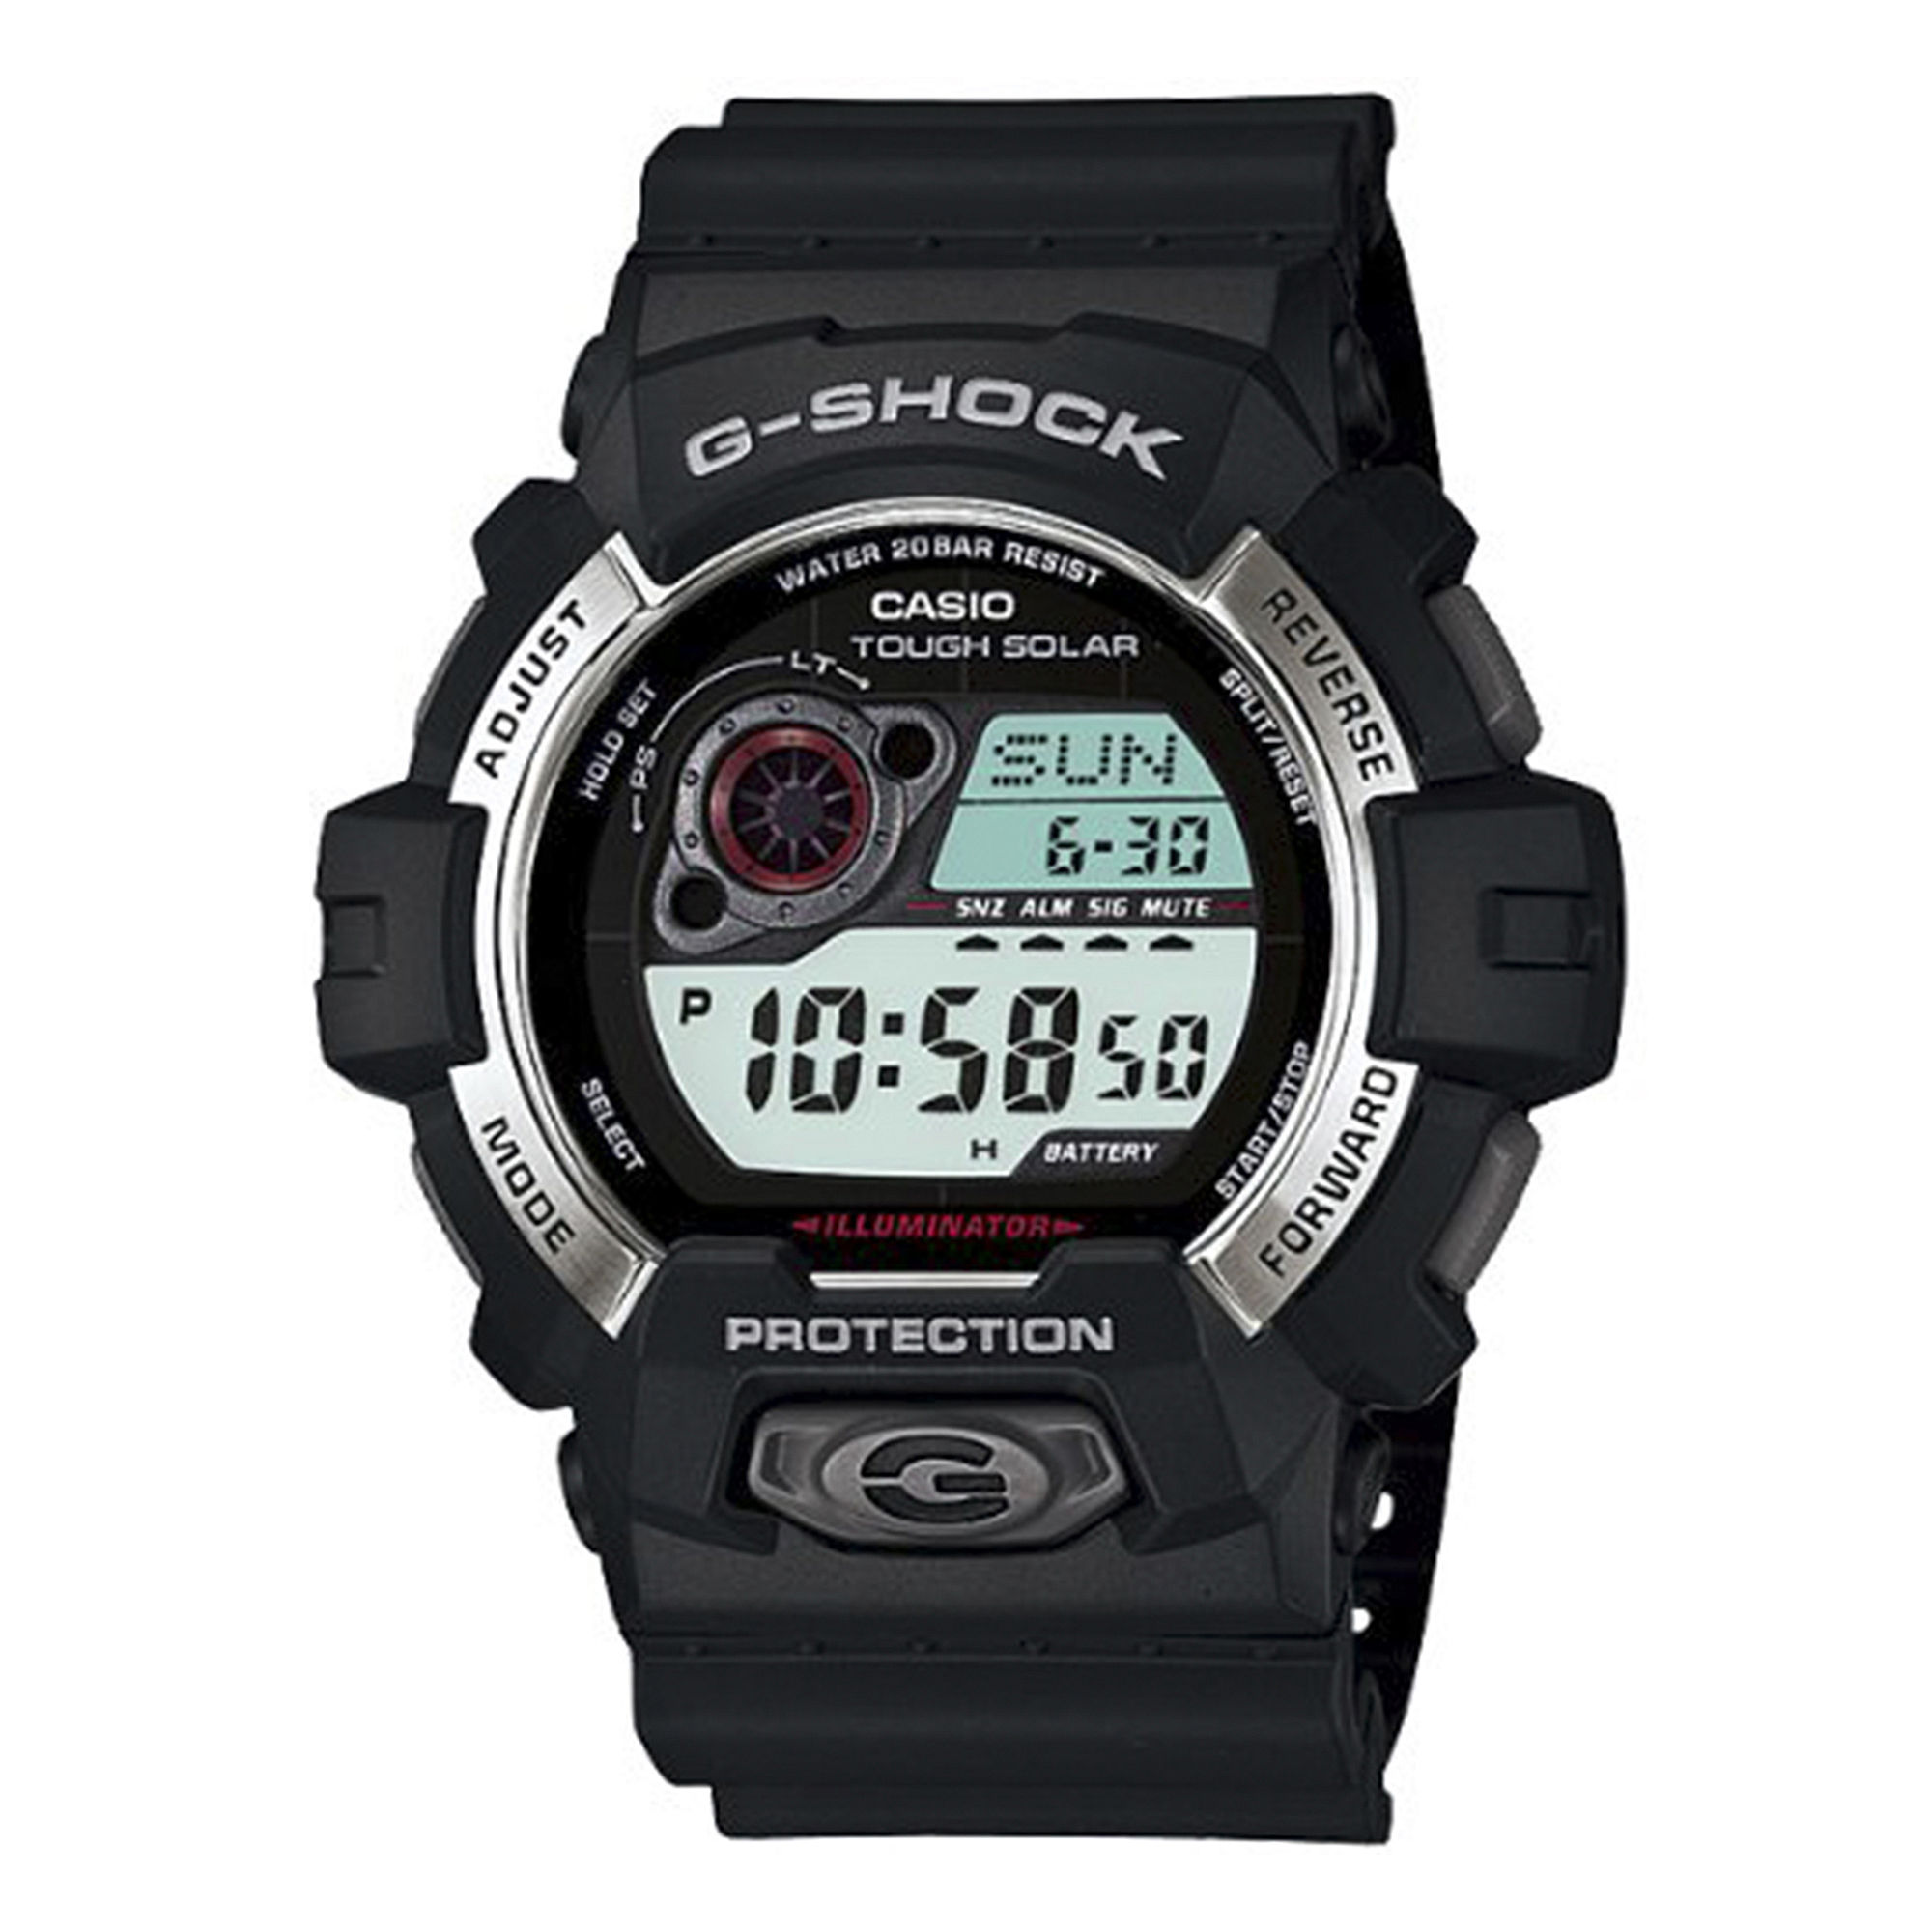 Casio G-Shock Tough Solar Illuminator Mens Watch GR8900-1